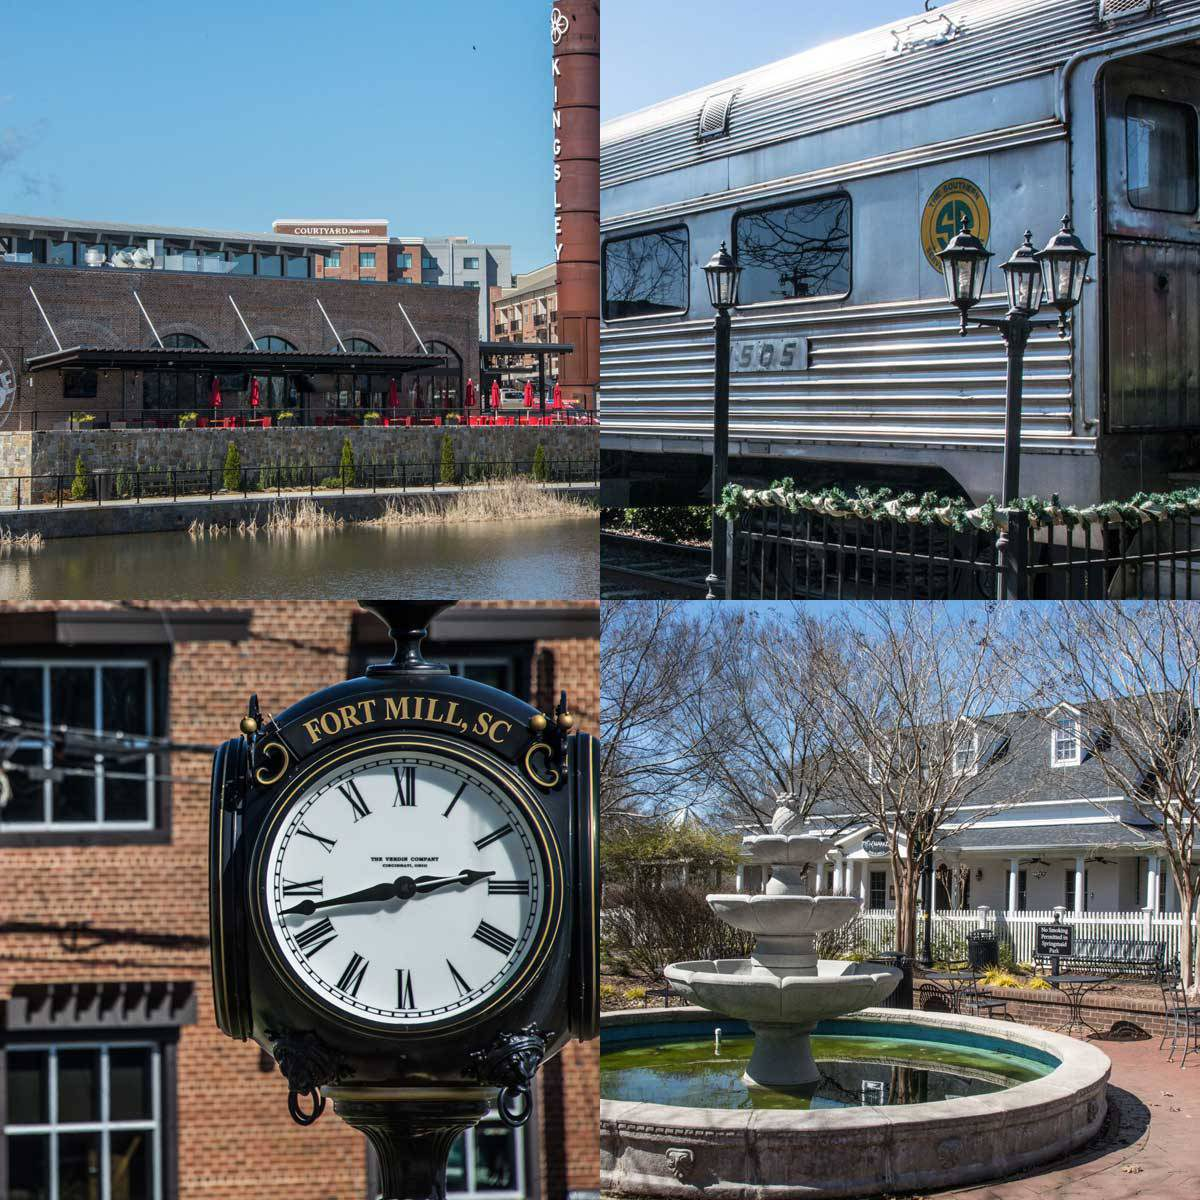 four blocks showing a black and white clock, a train, the fish market, and the old fort mill train